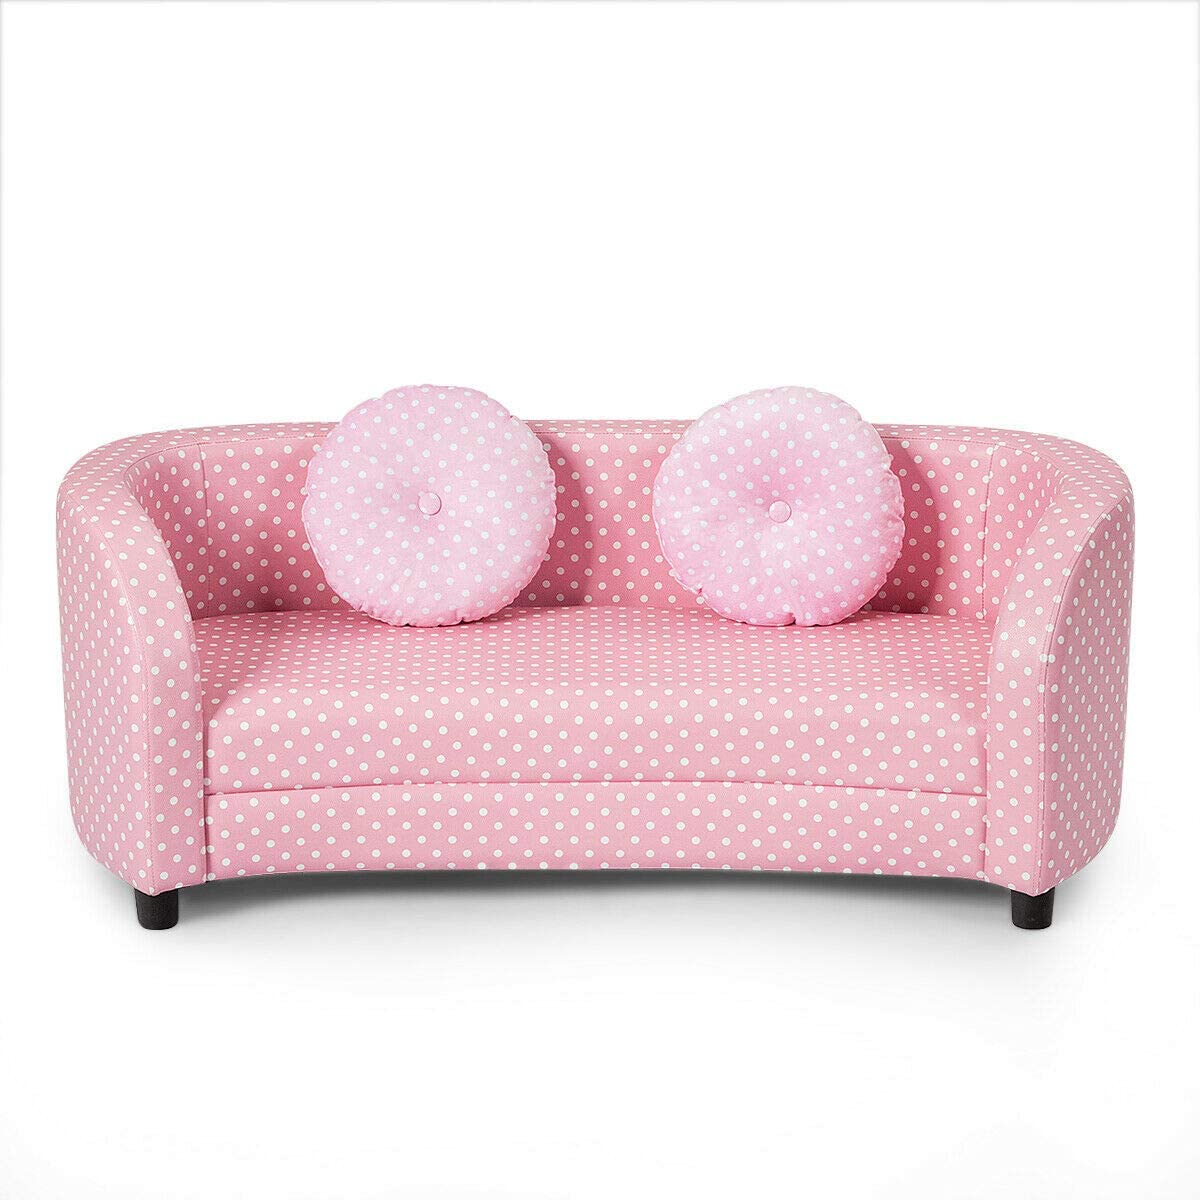 Kids Furniture Sofa Armrest Chair with Max Popular popular 63% OFF Two Gift Pillows fo Cloth